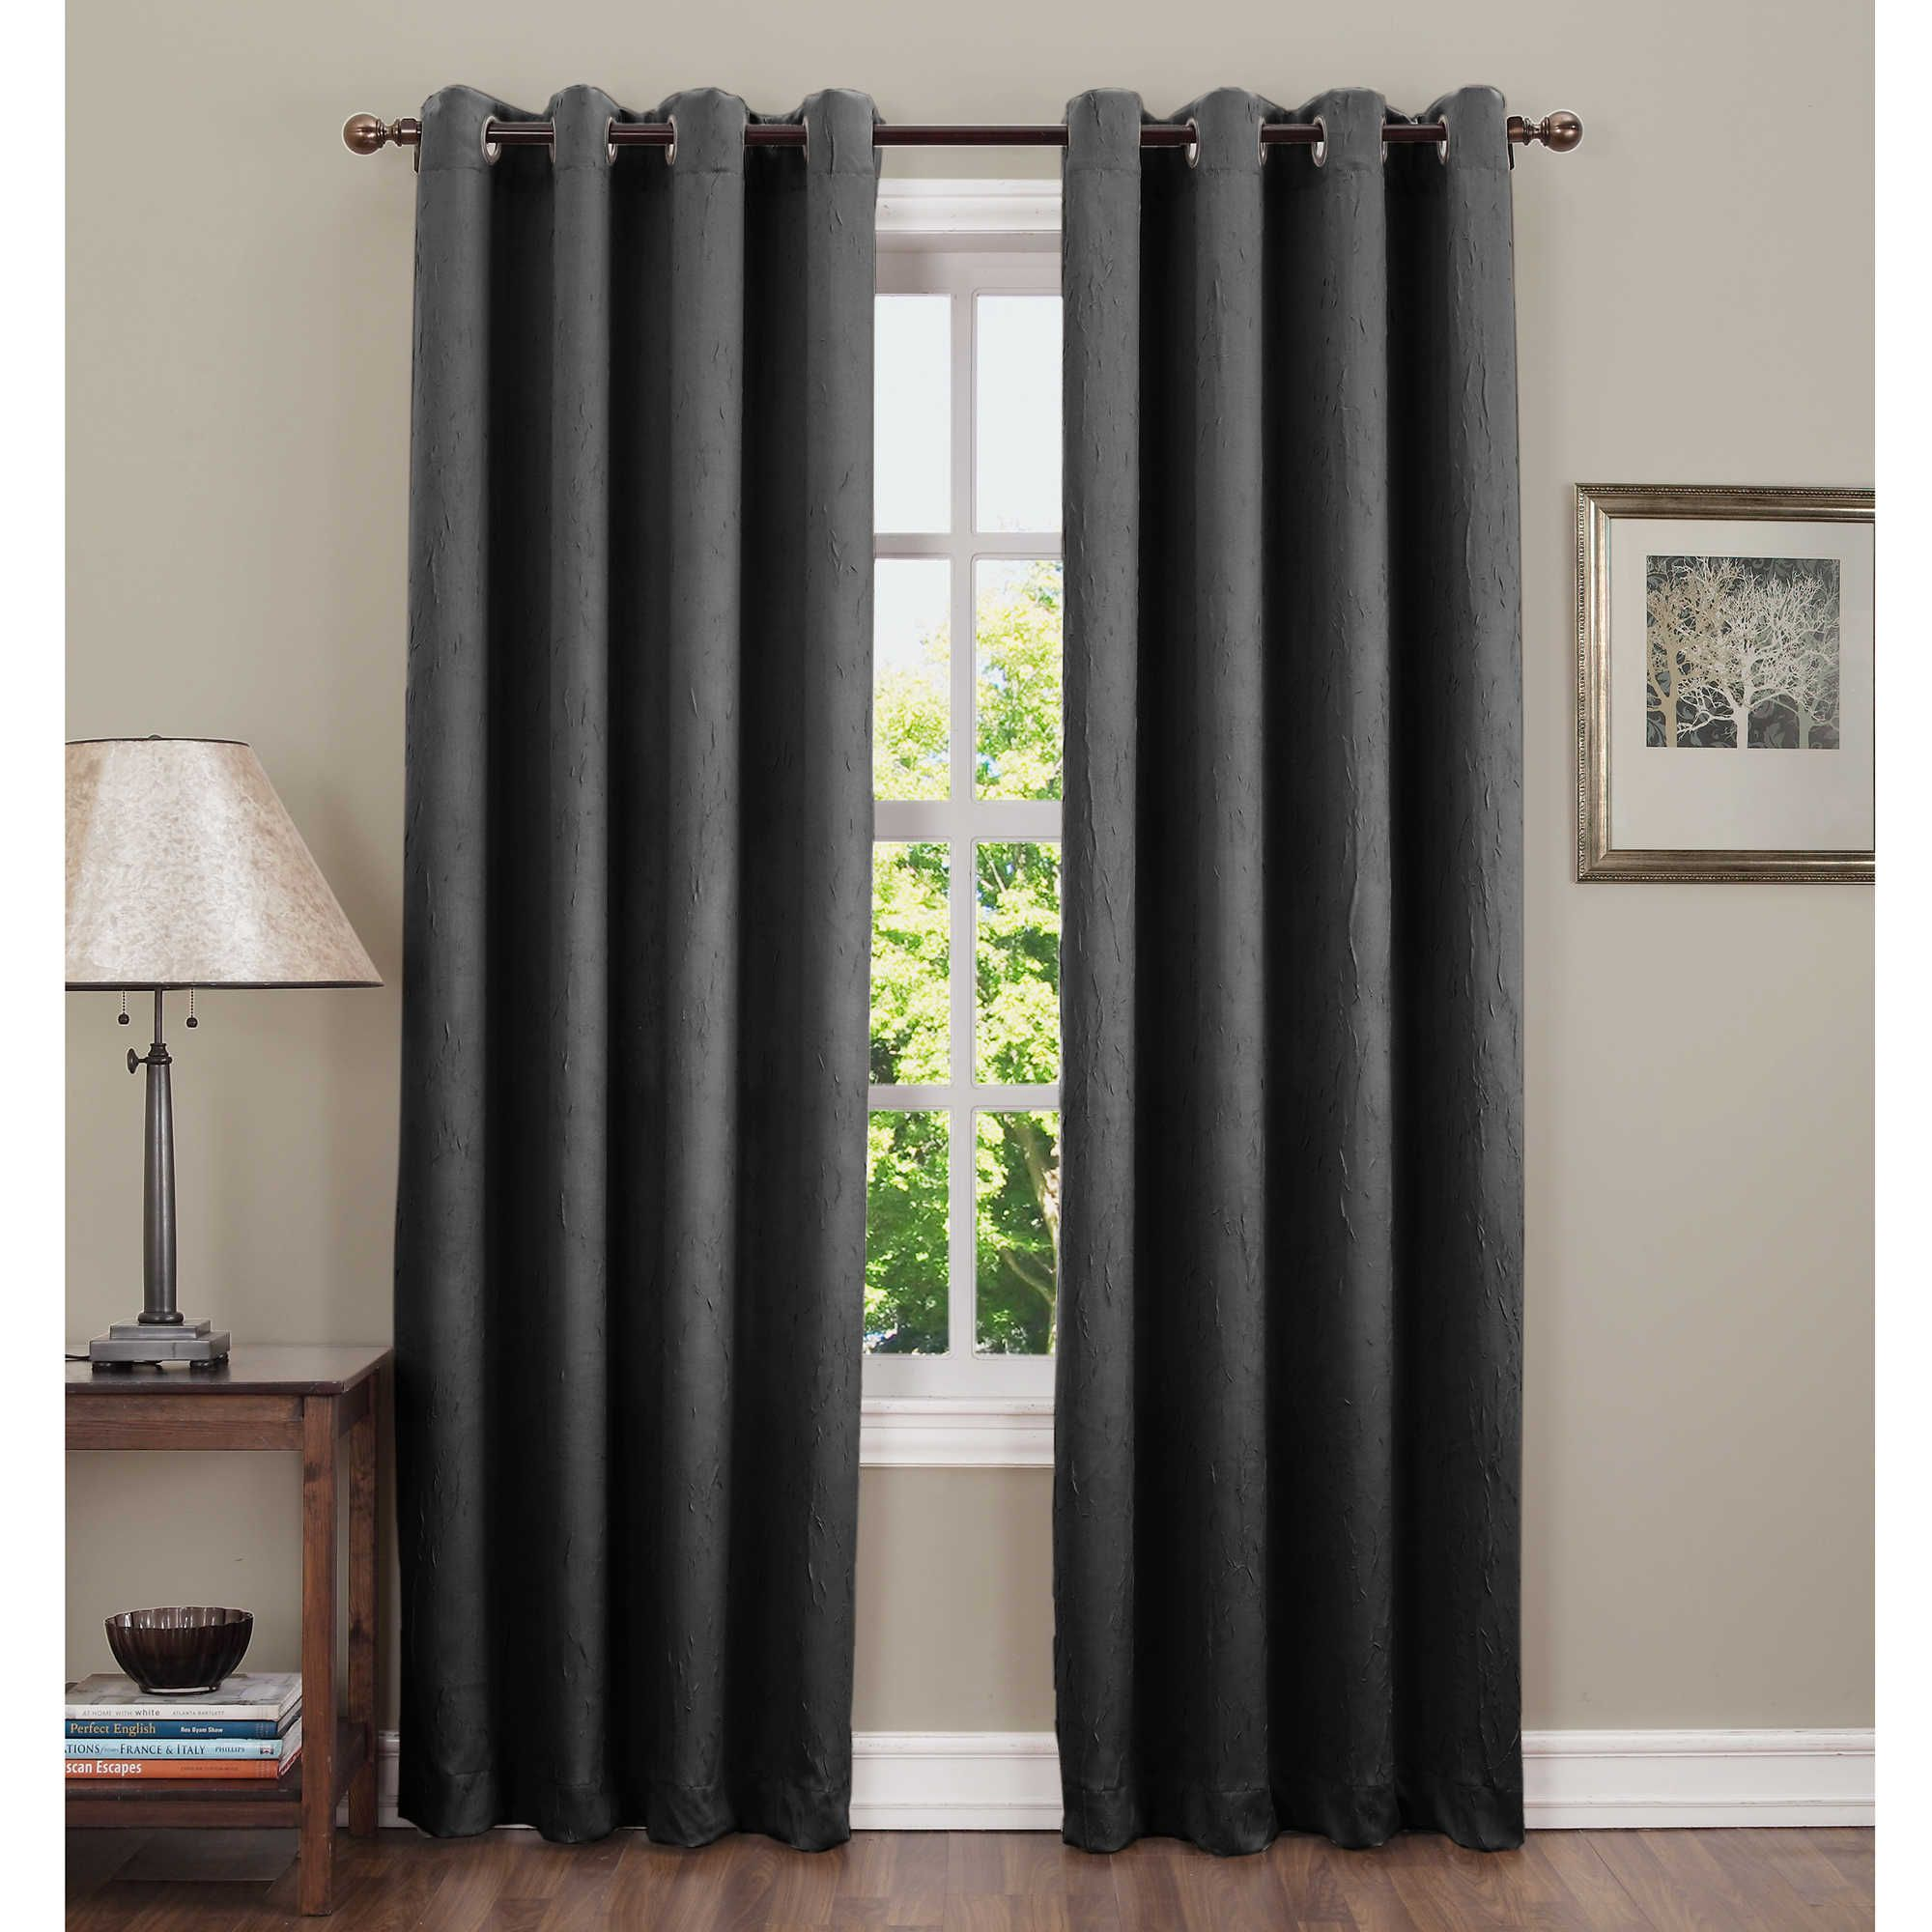 Sun Zero Hoffman Grommet Top Room Darkening Window Curtain Panel